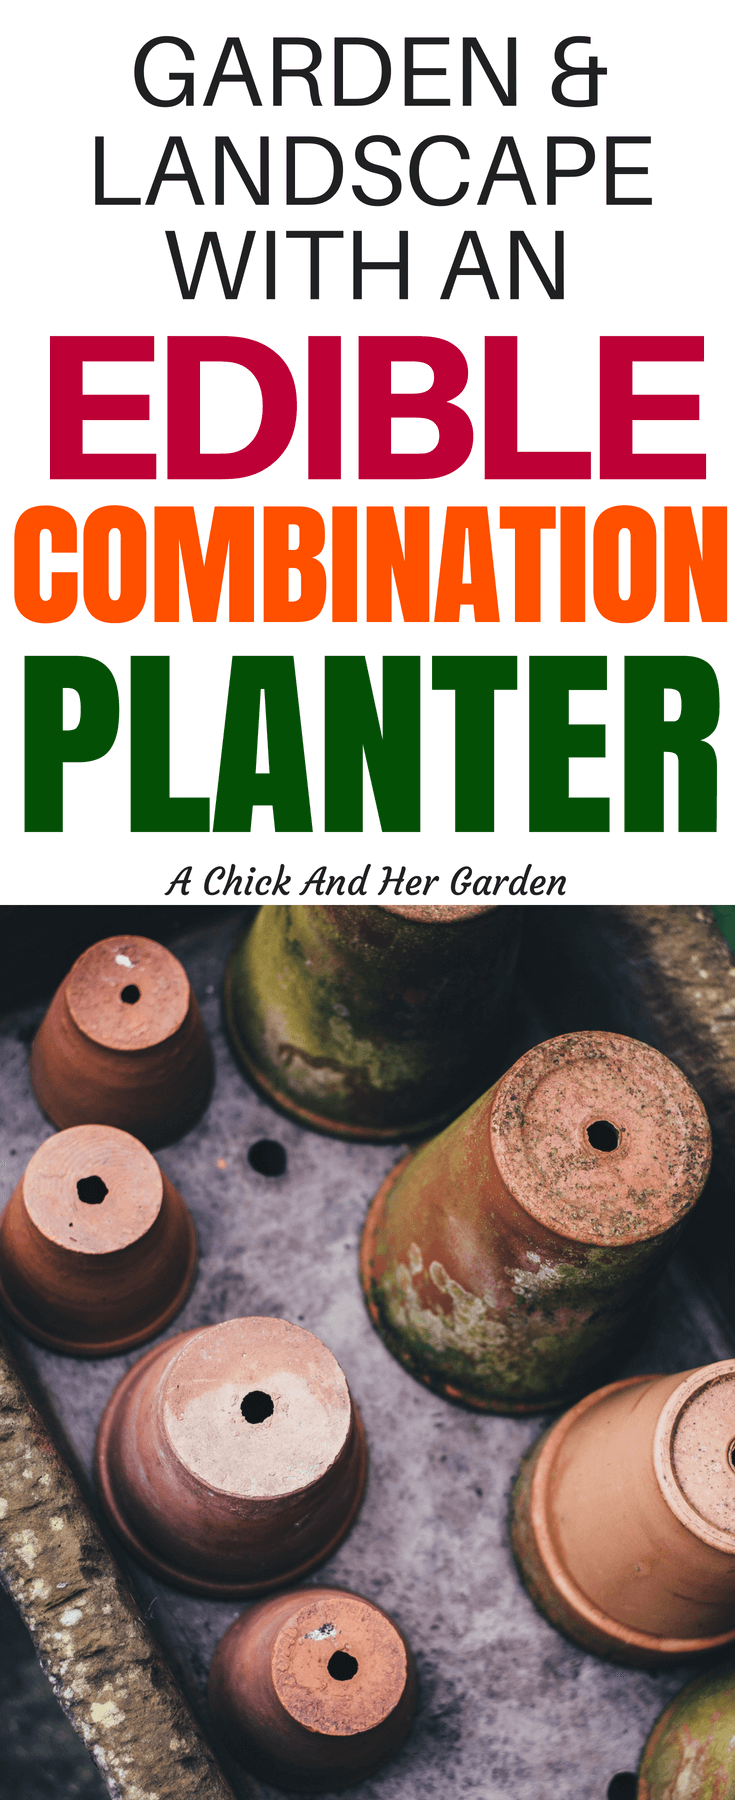 Make your small space beautiful and grow organic produce with an edible combination planter! This is the ultimate guide to small space gardening! #homesteadanywhere #growfoodnotlawns #ediblelandscape #containergarden #achickandhergarden